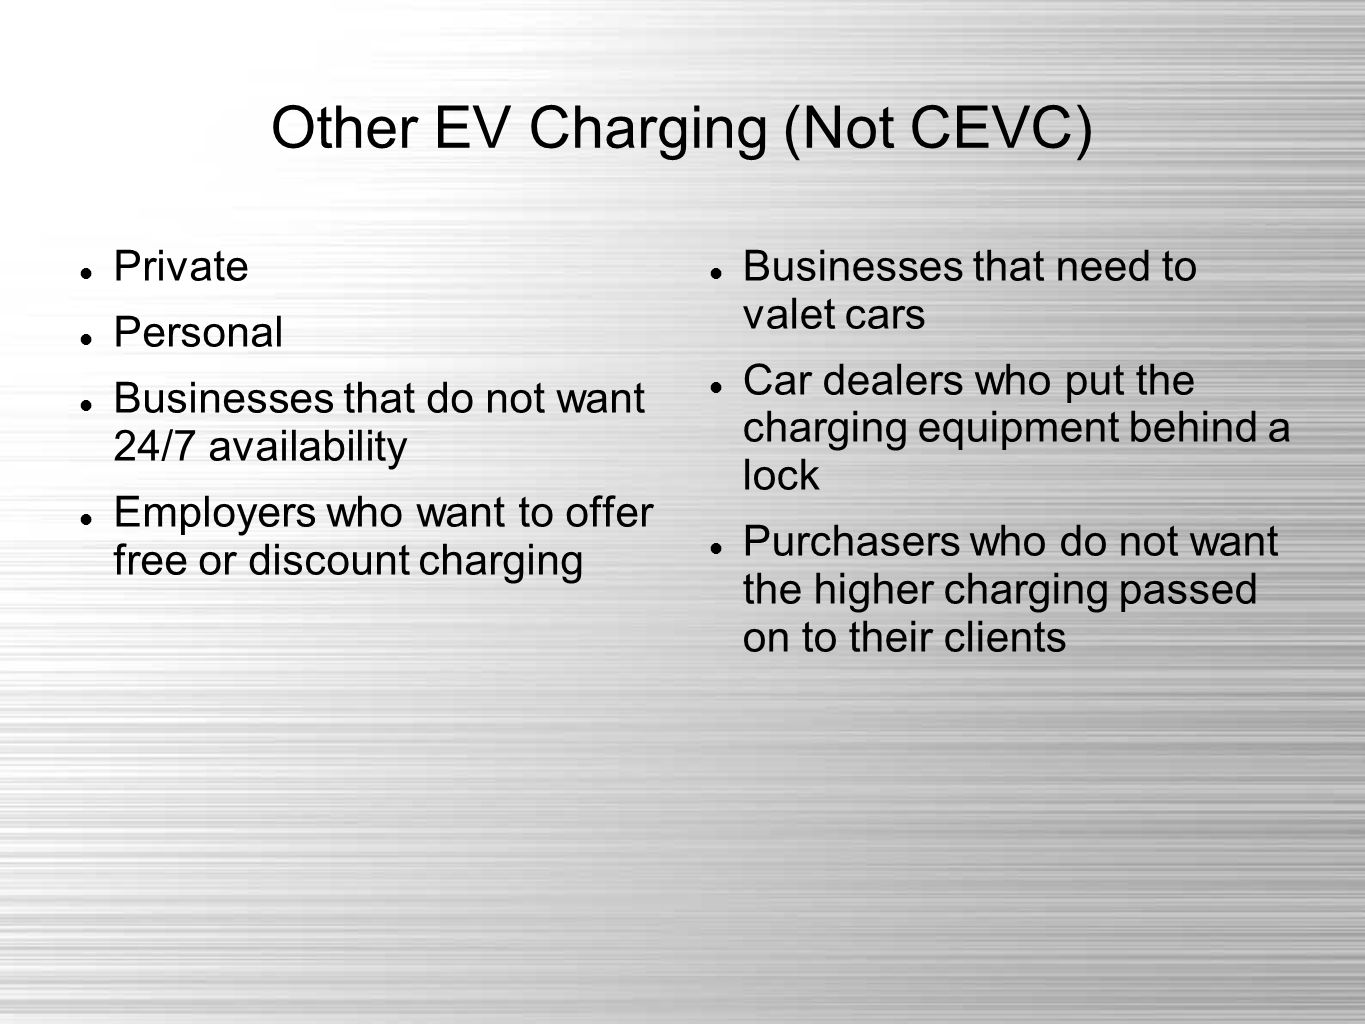 Other EV Charging (Not CEVC) Private Personal Businesses that do not want 24/7 availability Employers who want to offer free or discount charging Businesses that need to valet cars Car dealers who put the charging equipment behind a lock Purchasers who do not want the higher charging passed on to their clients